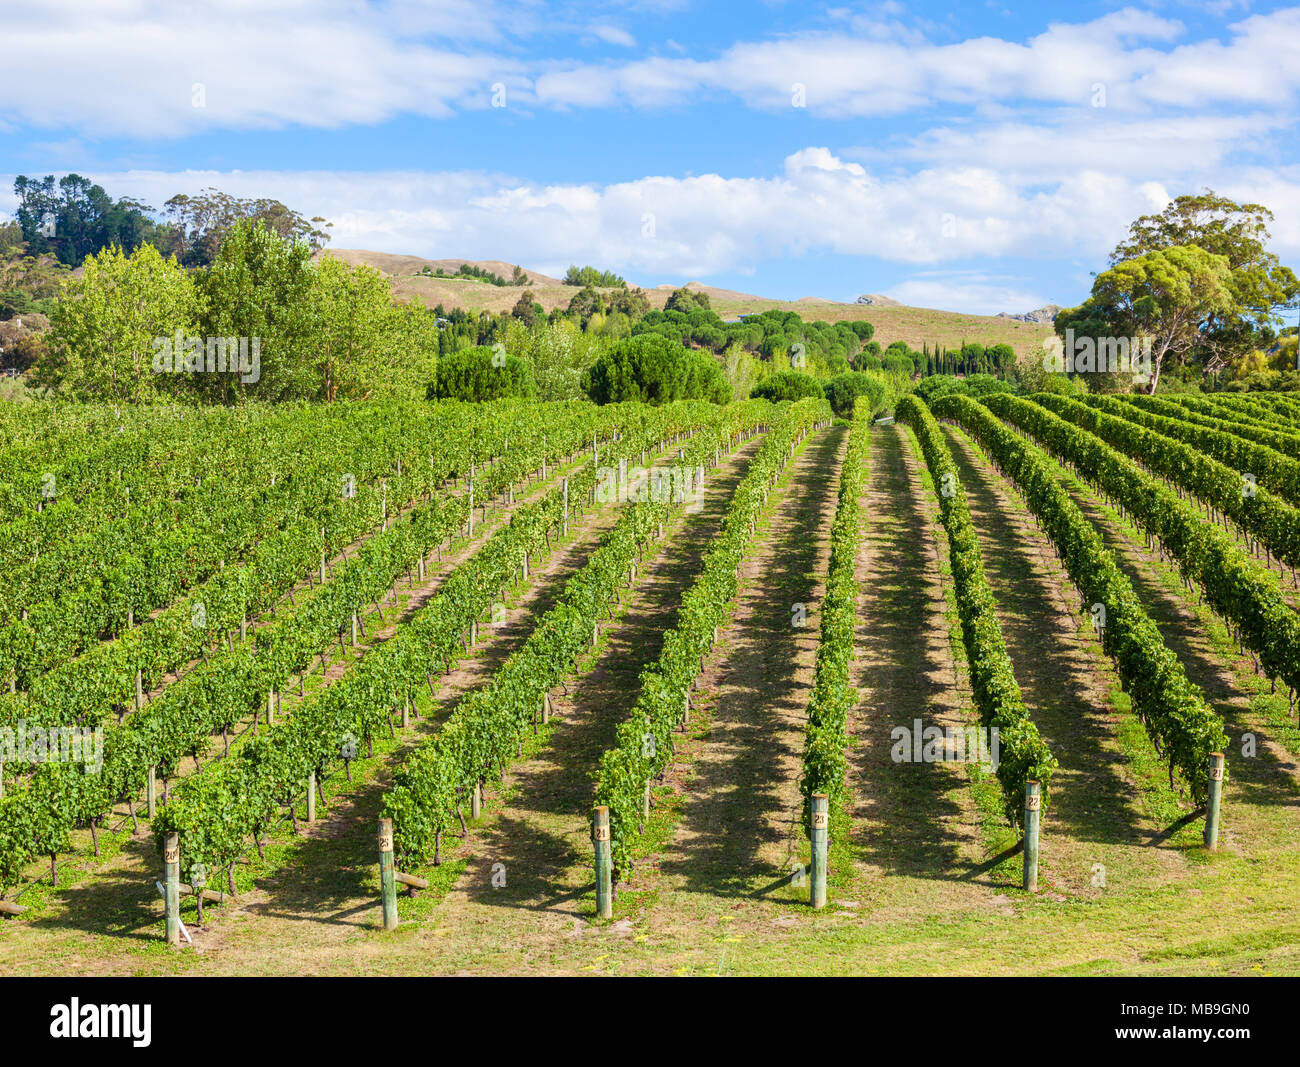 new zealand Hawkes bay new zealand bunches of grapes on vines in rows in a vineyard in Hawkes bay Napier New zealand North island NZ - Stock Image